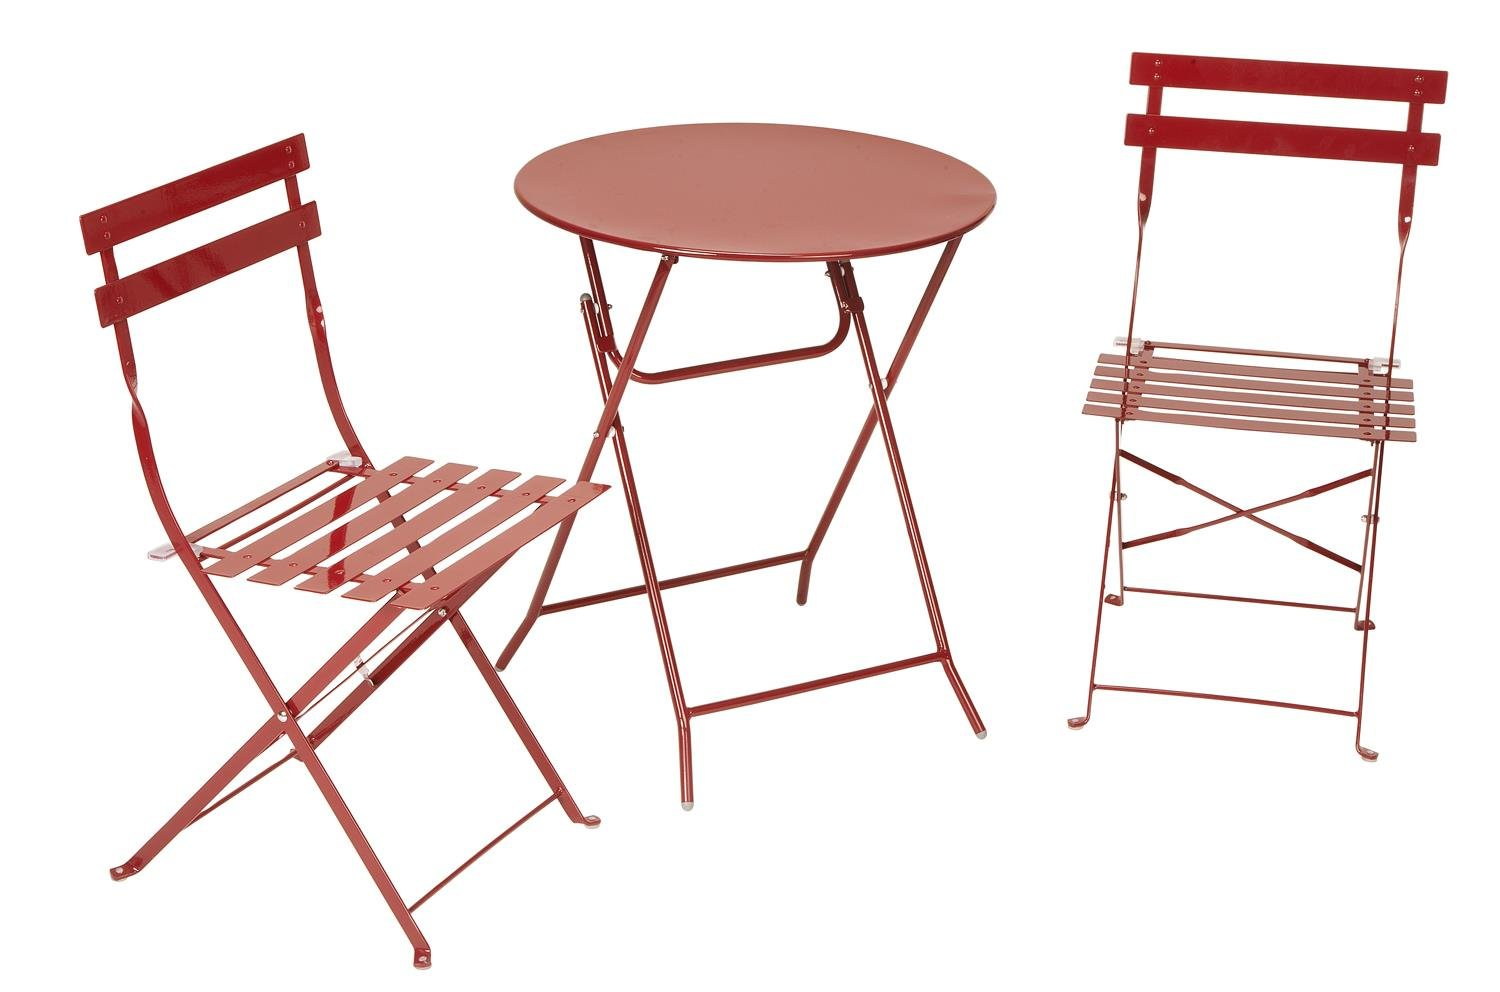 Exceptional Amazon.com: Cosco 3 Piece Folding Bistro Style Patio Table And Chairs Set,  Red: Kitchen U0026 Dining